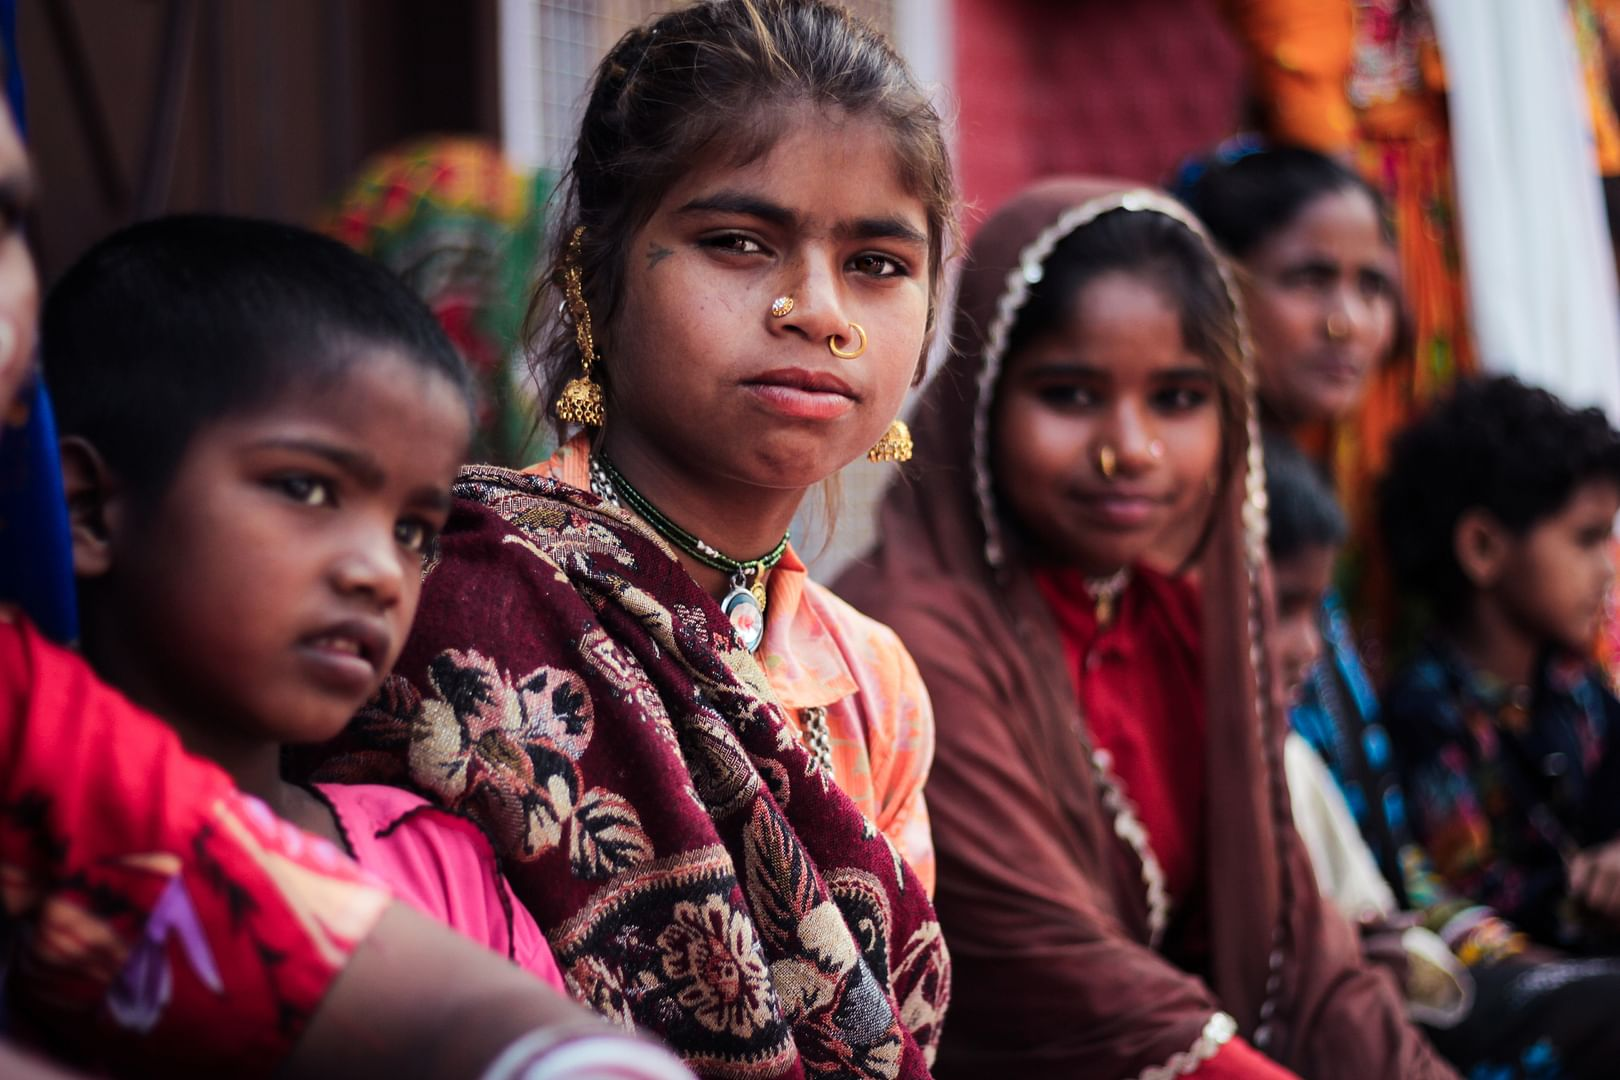 Tarabai's writings against child marriage and gender inequality still resonate today. (Source: Pxhere)